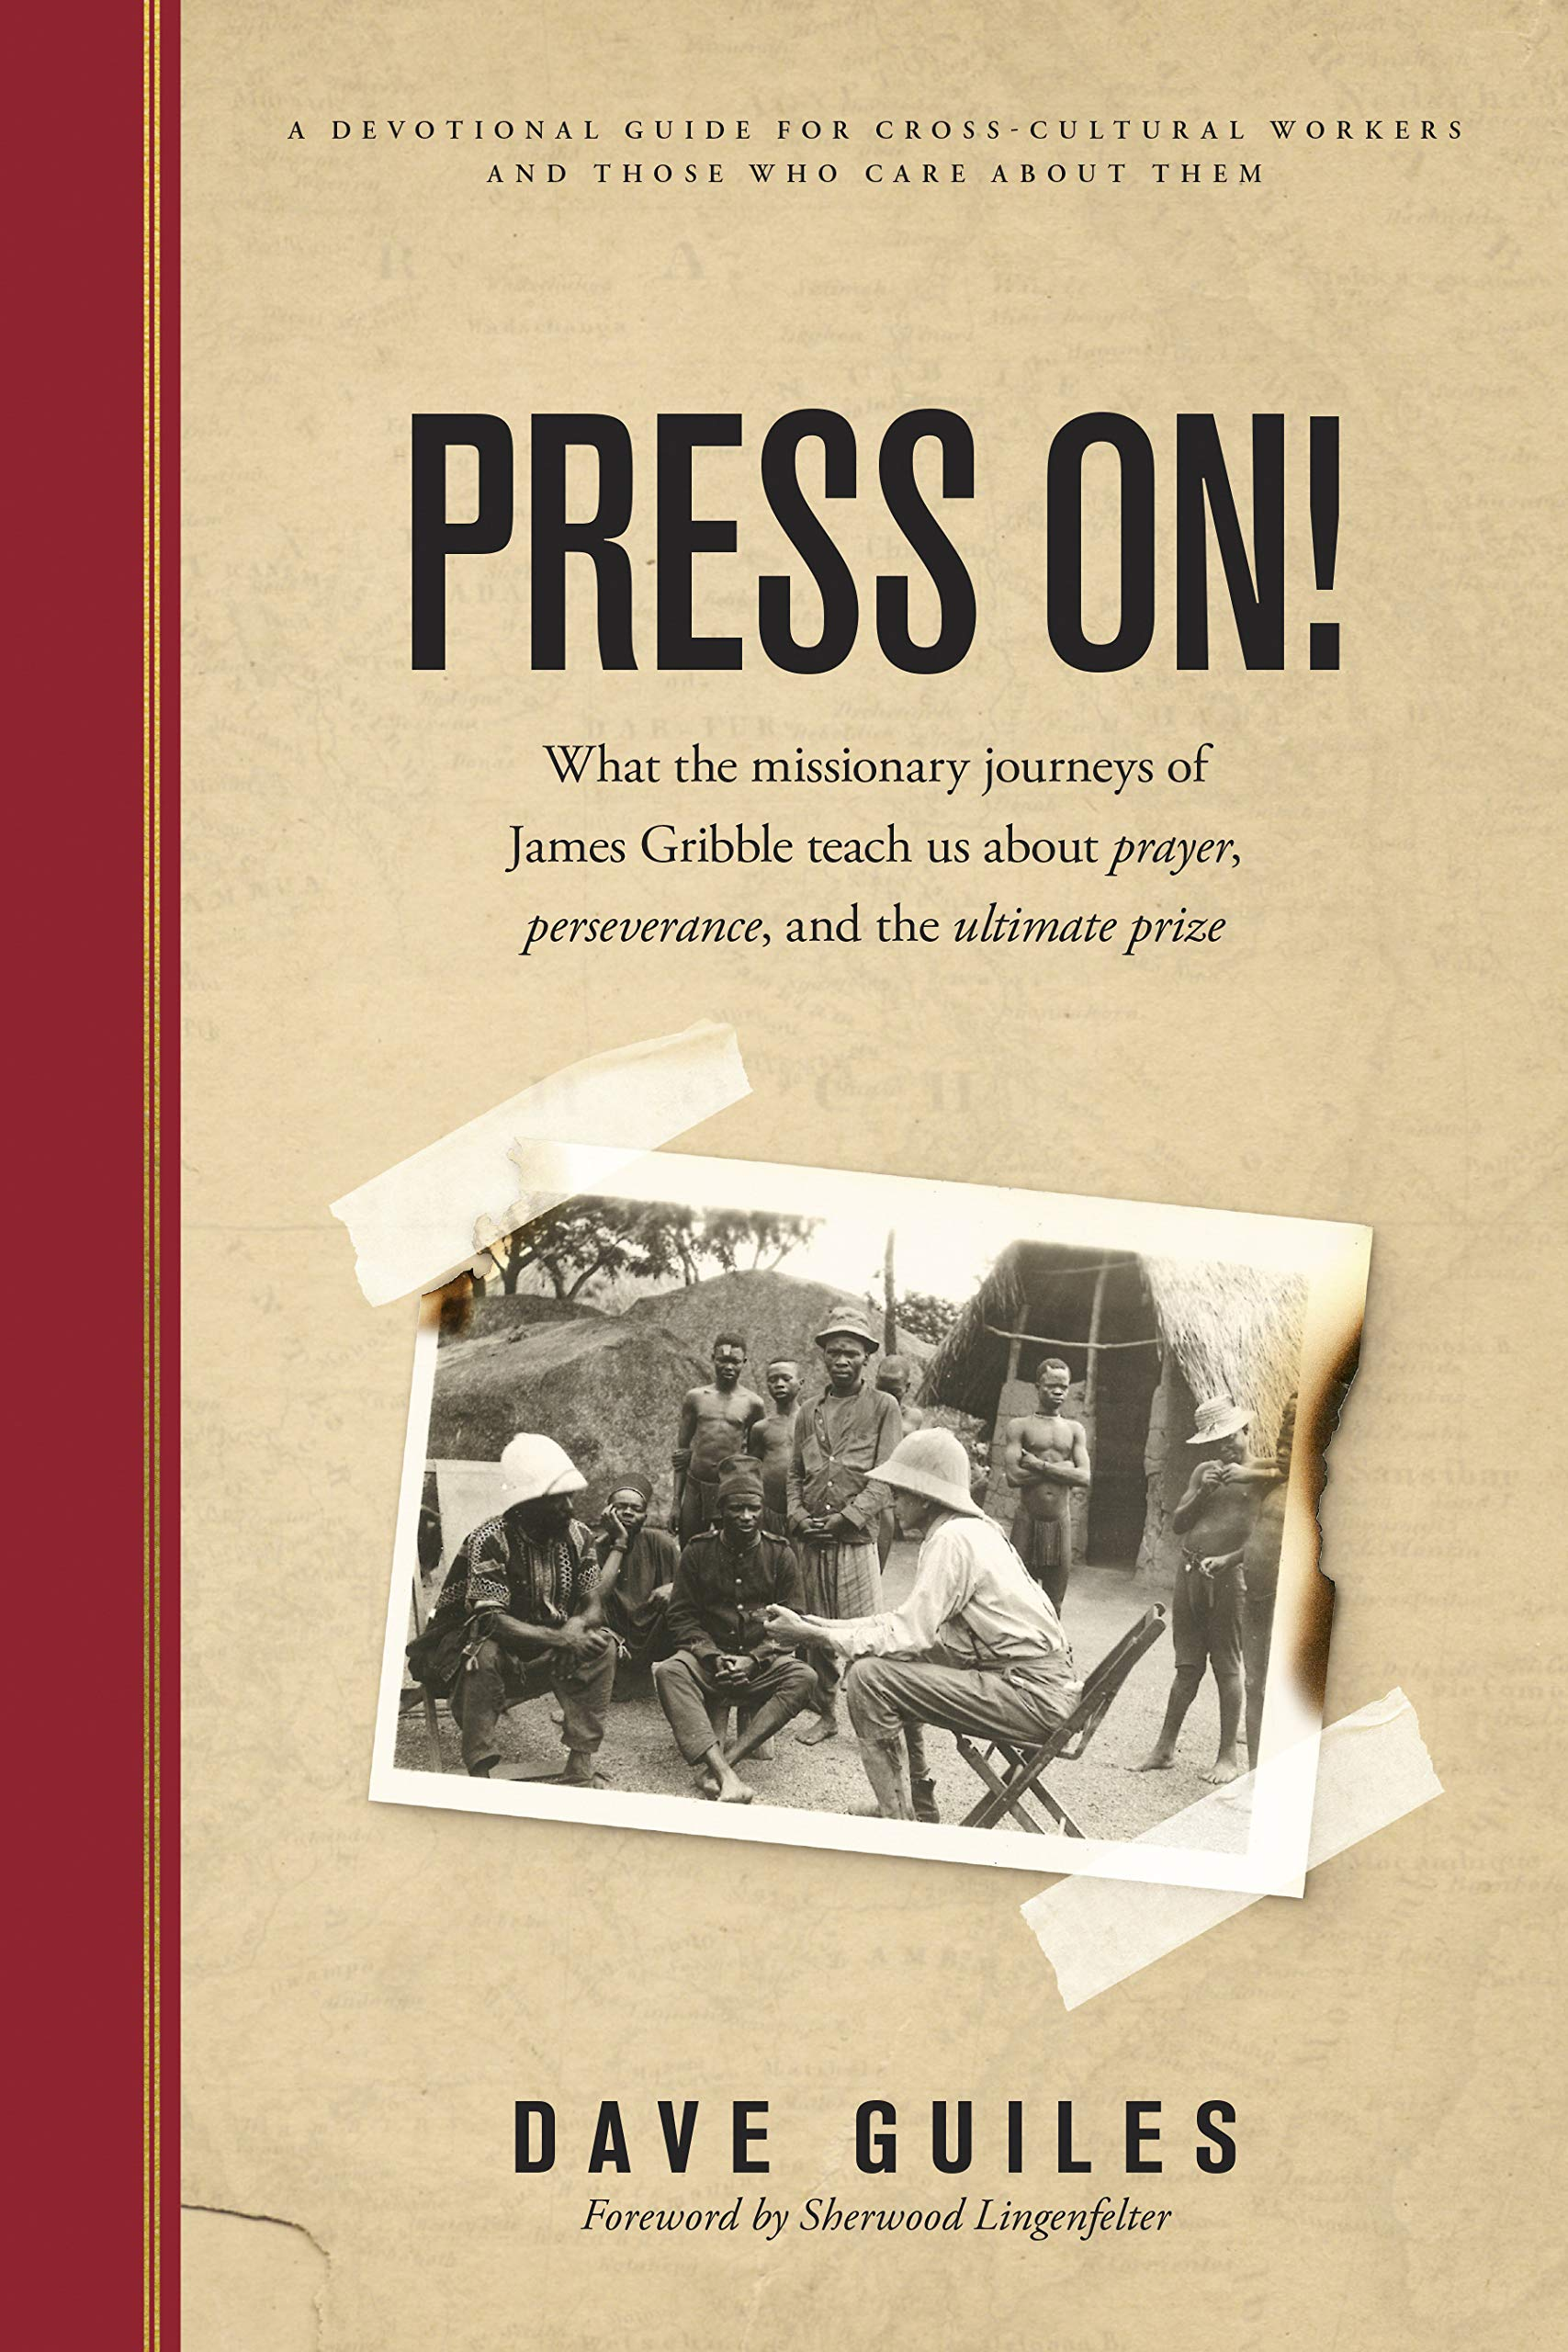 Press On! : What the missionary journeys of James Gribble teach us about prayer, perseverance and the ultimate prize